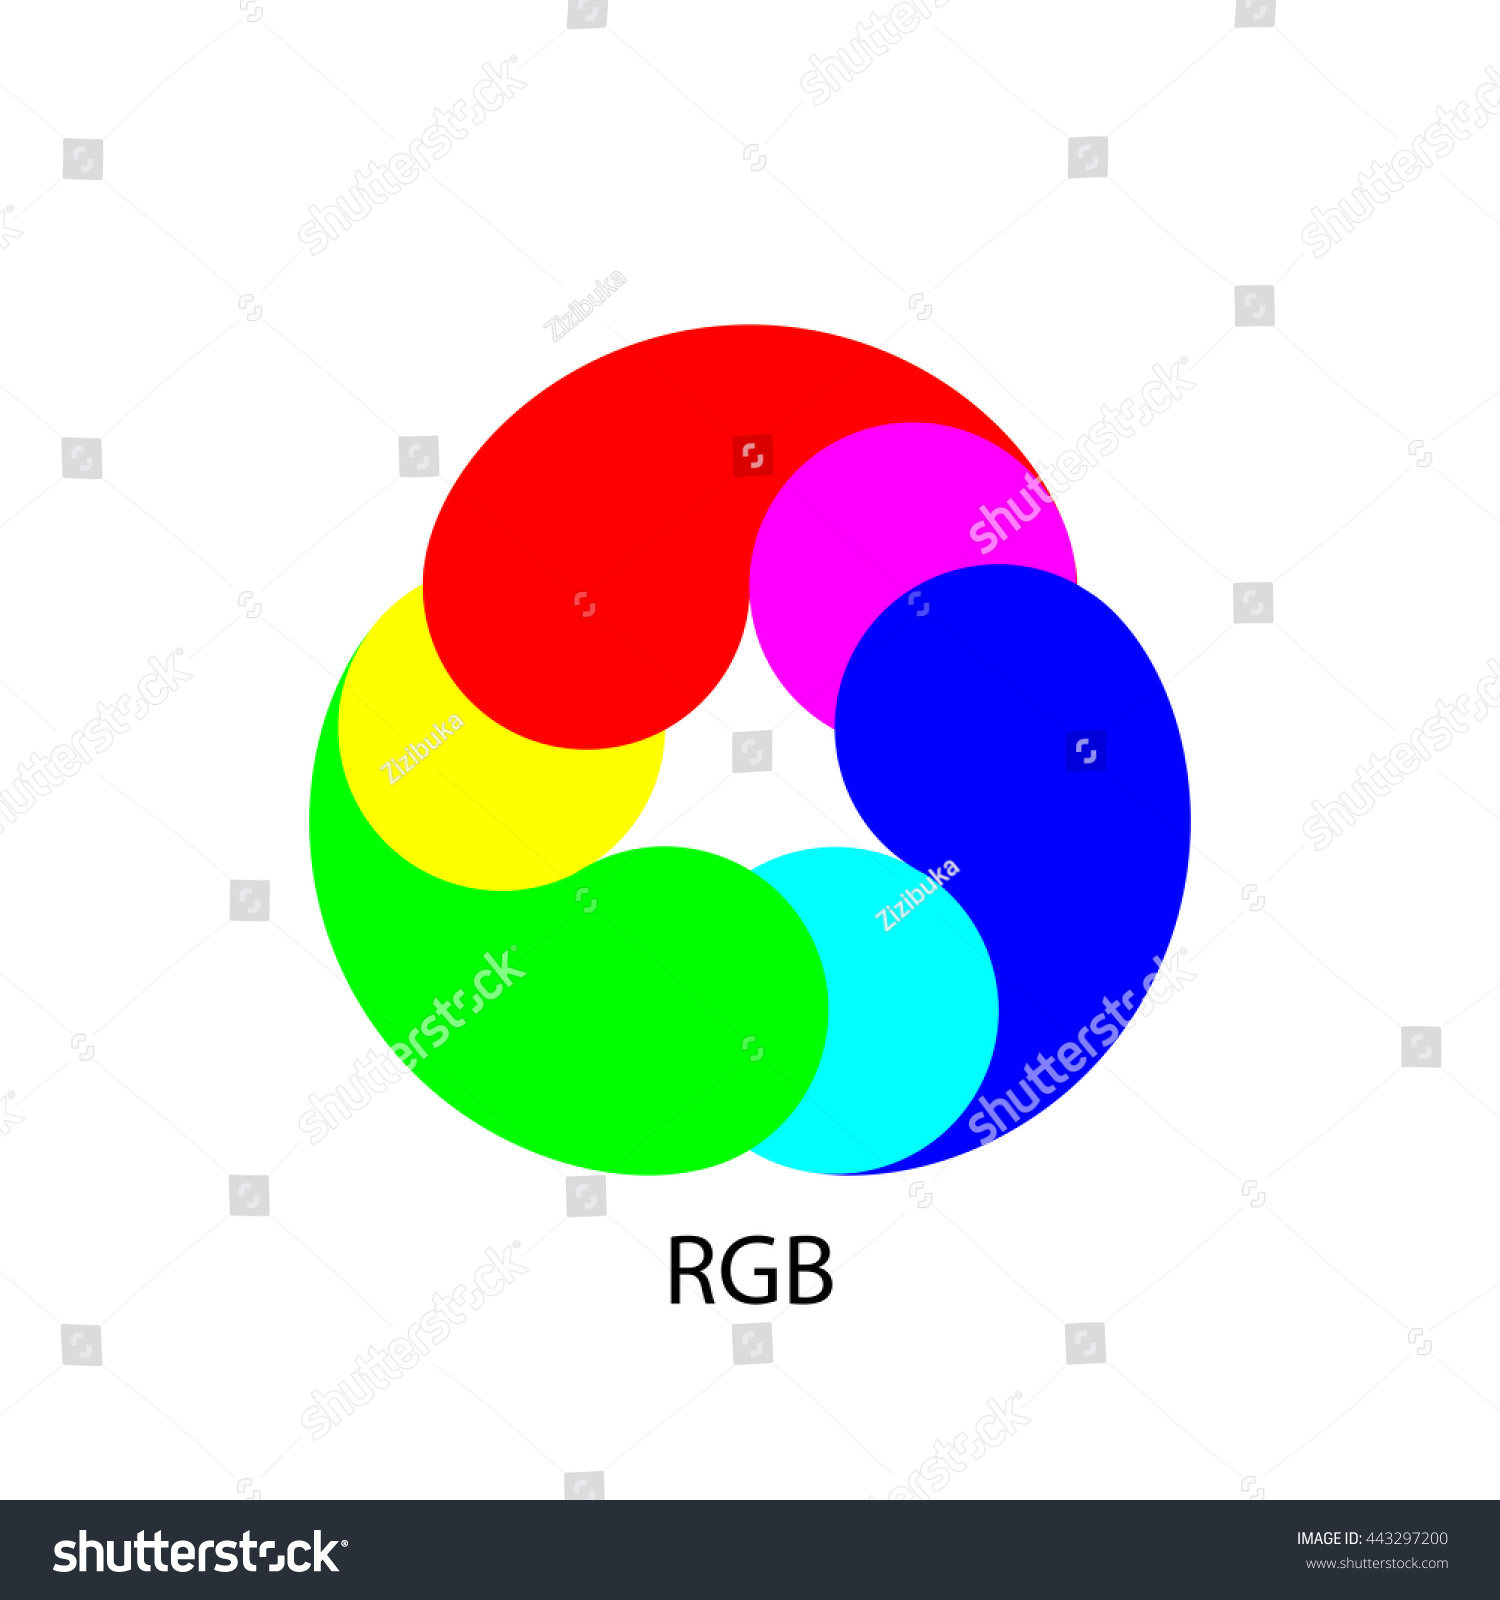 Vector Chart Explaining RGB Color Modes Red Green And Blue Colors With Yellow